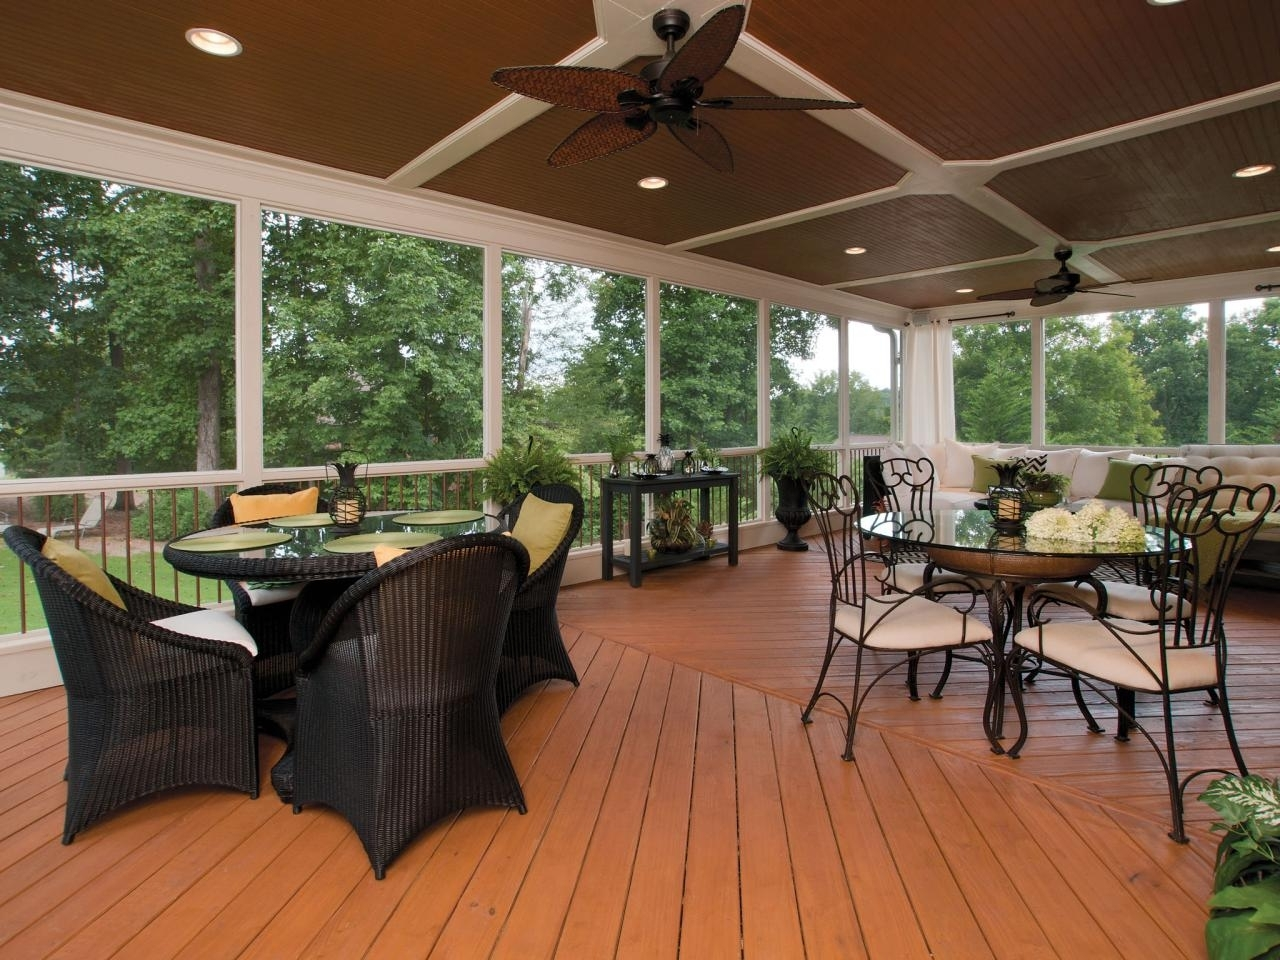 Front Porch Light With Camera Lights Music Ideas Outdoor Not Working With Best And Newest Outdoor Porch Ceiling Fans With Lights (View 12 of 20)